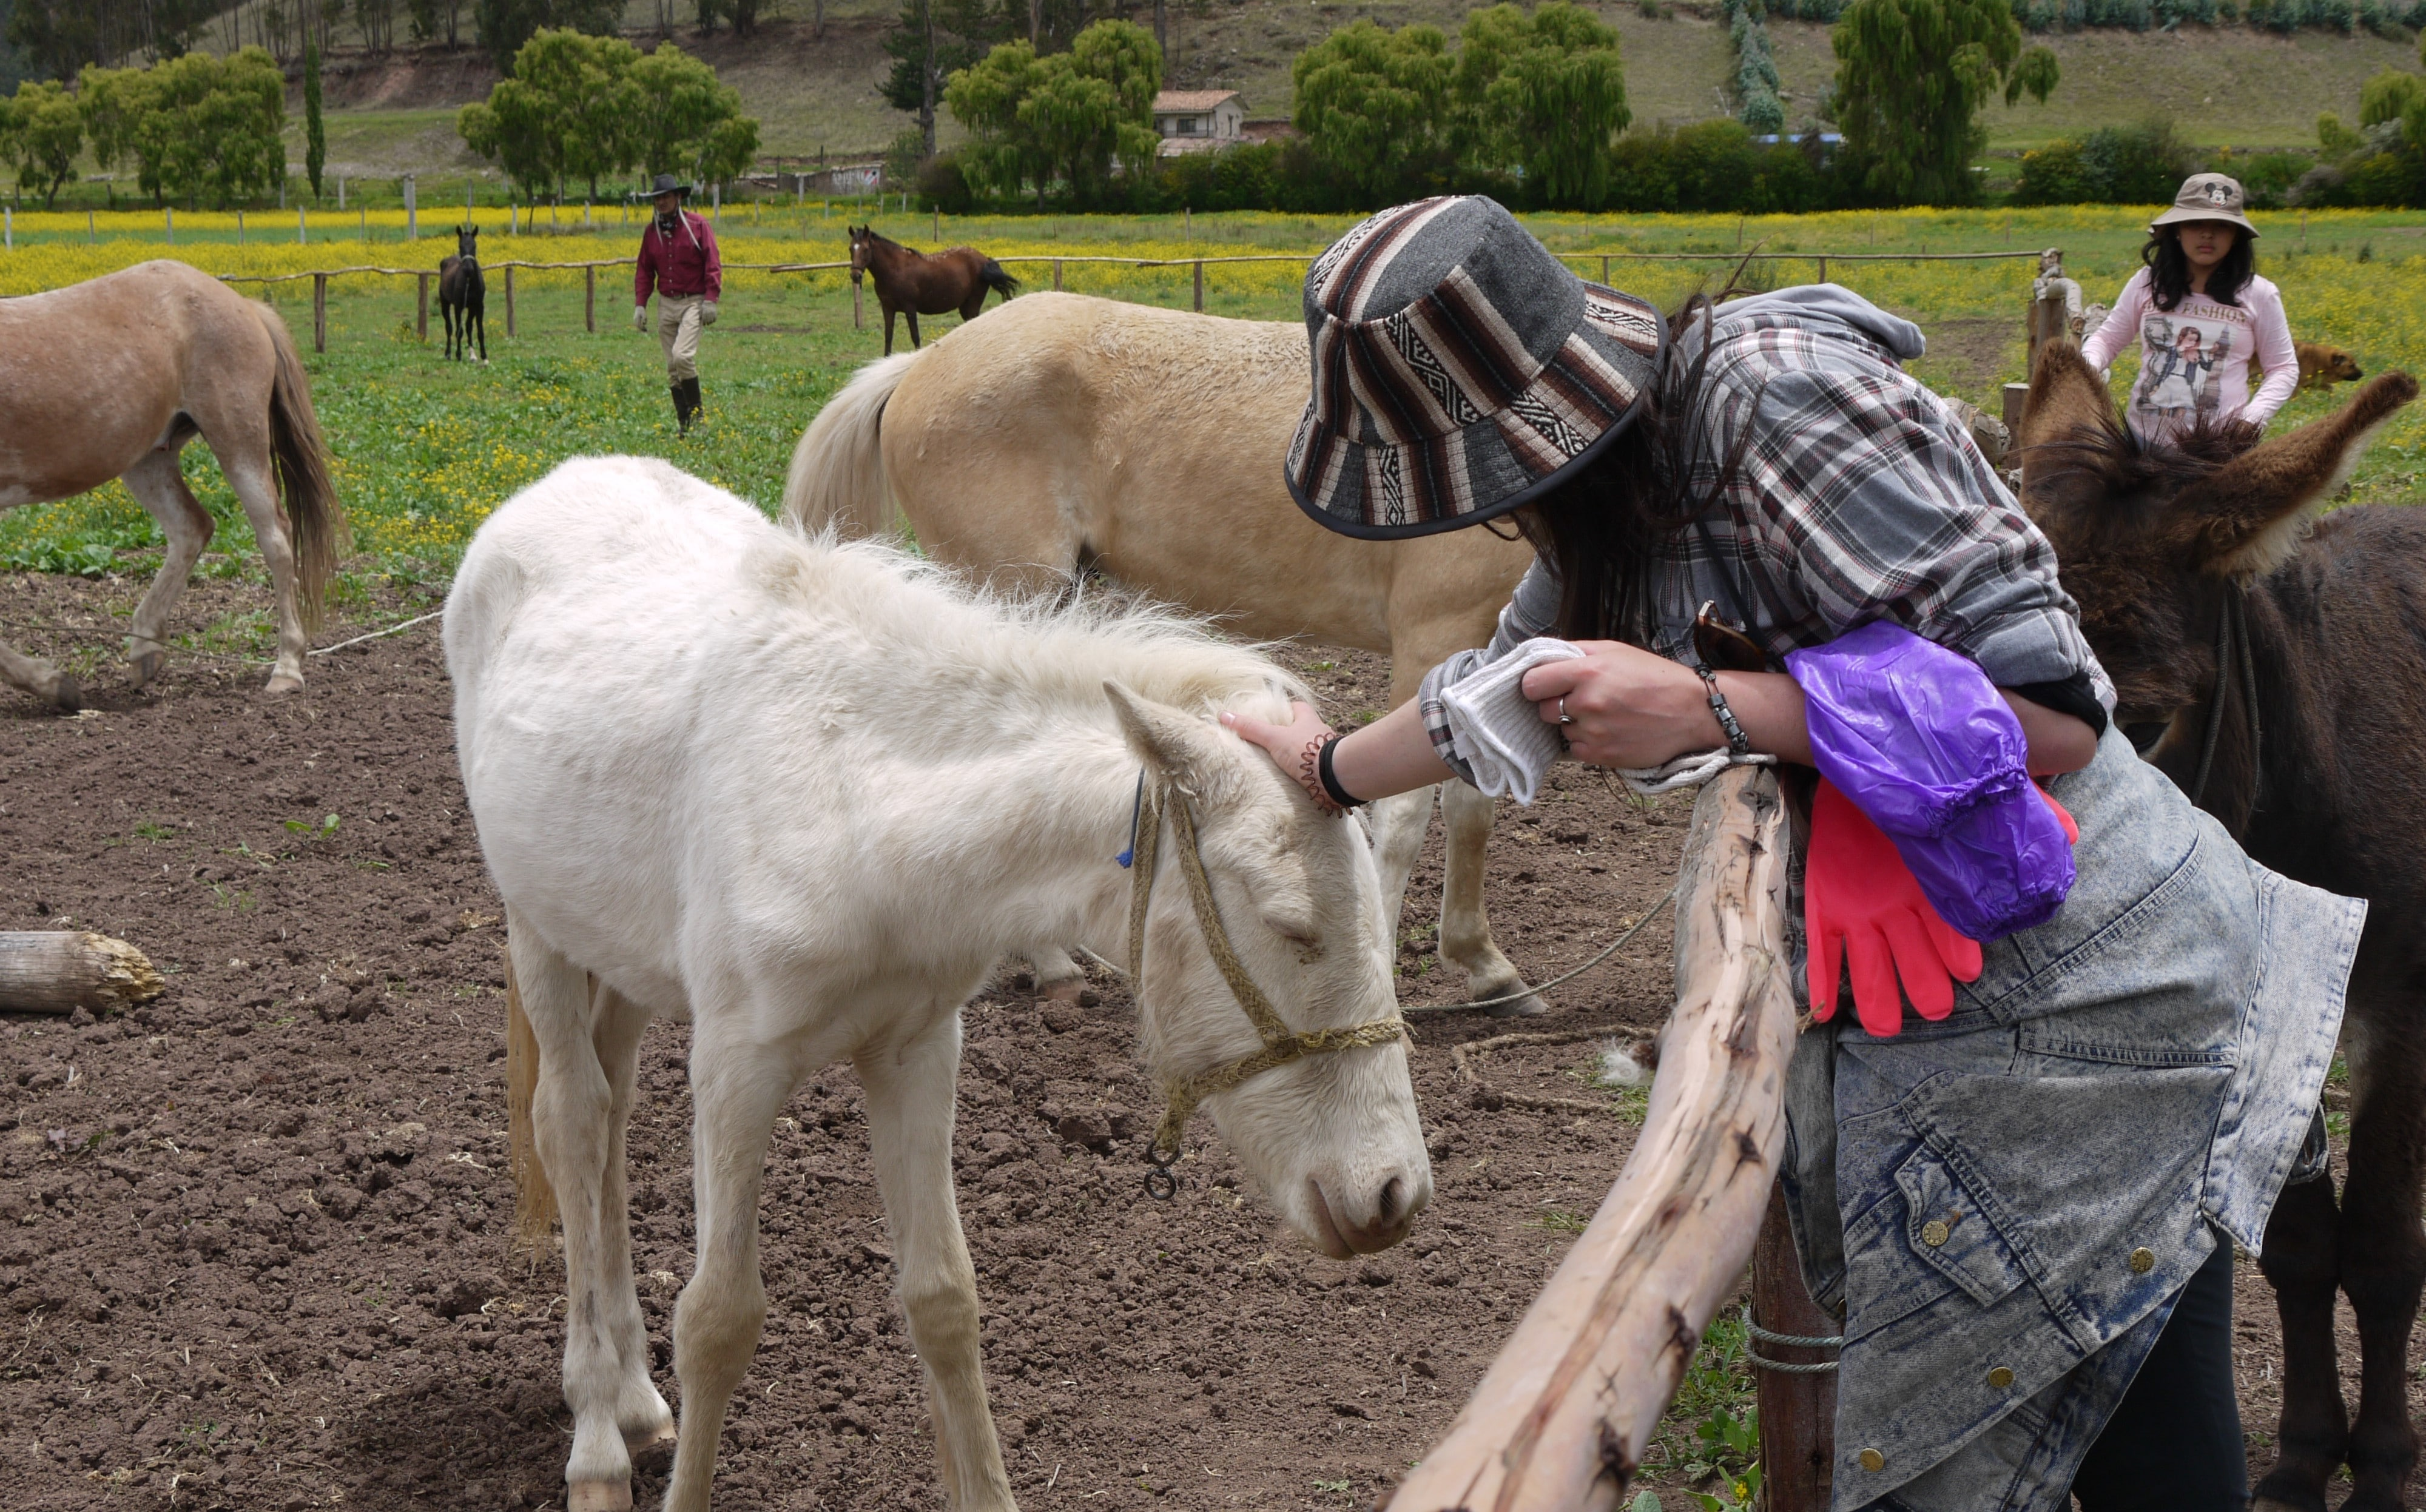 Volunteer meeting Rescued Horse at Horse Sanctuary